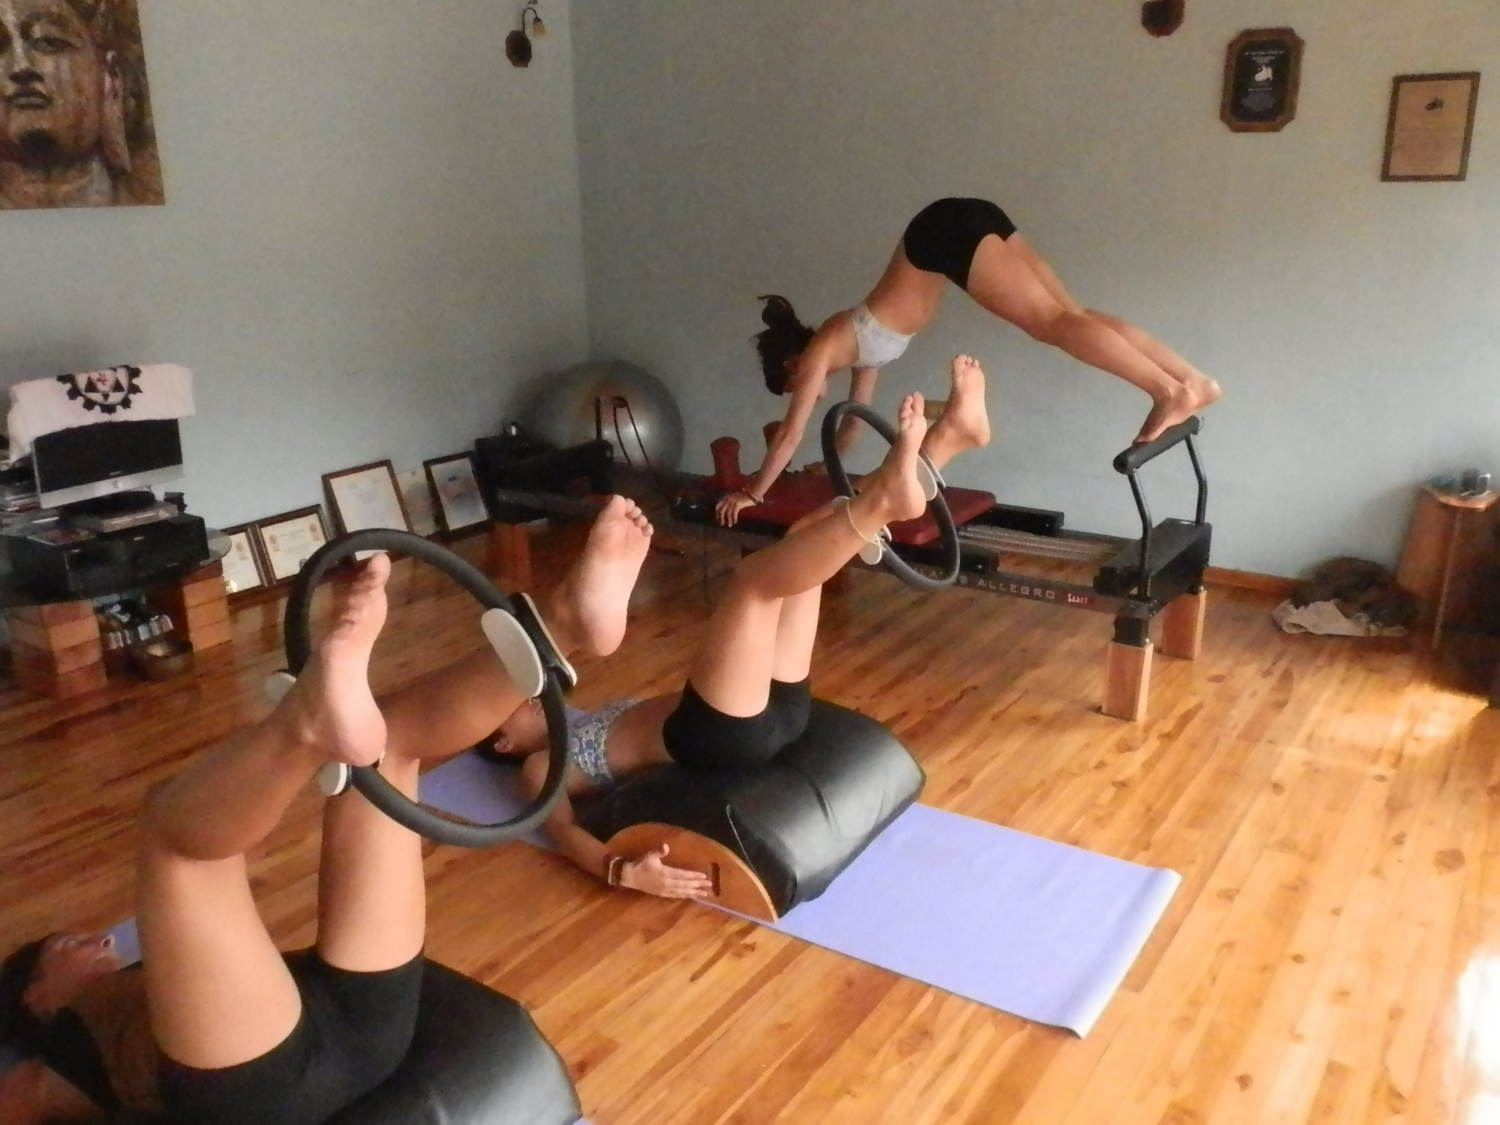 Three girls doing Pilates